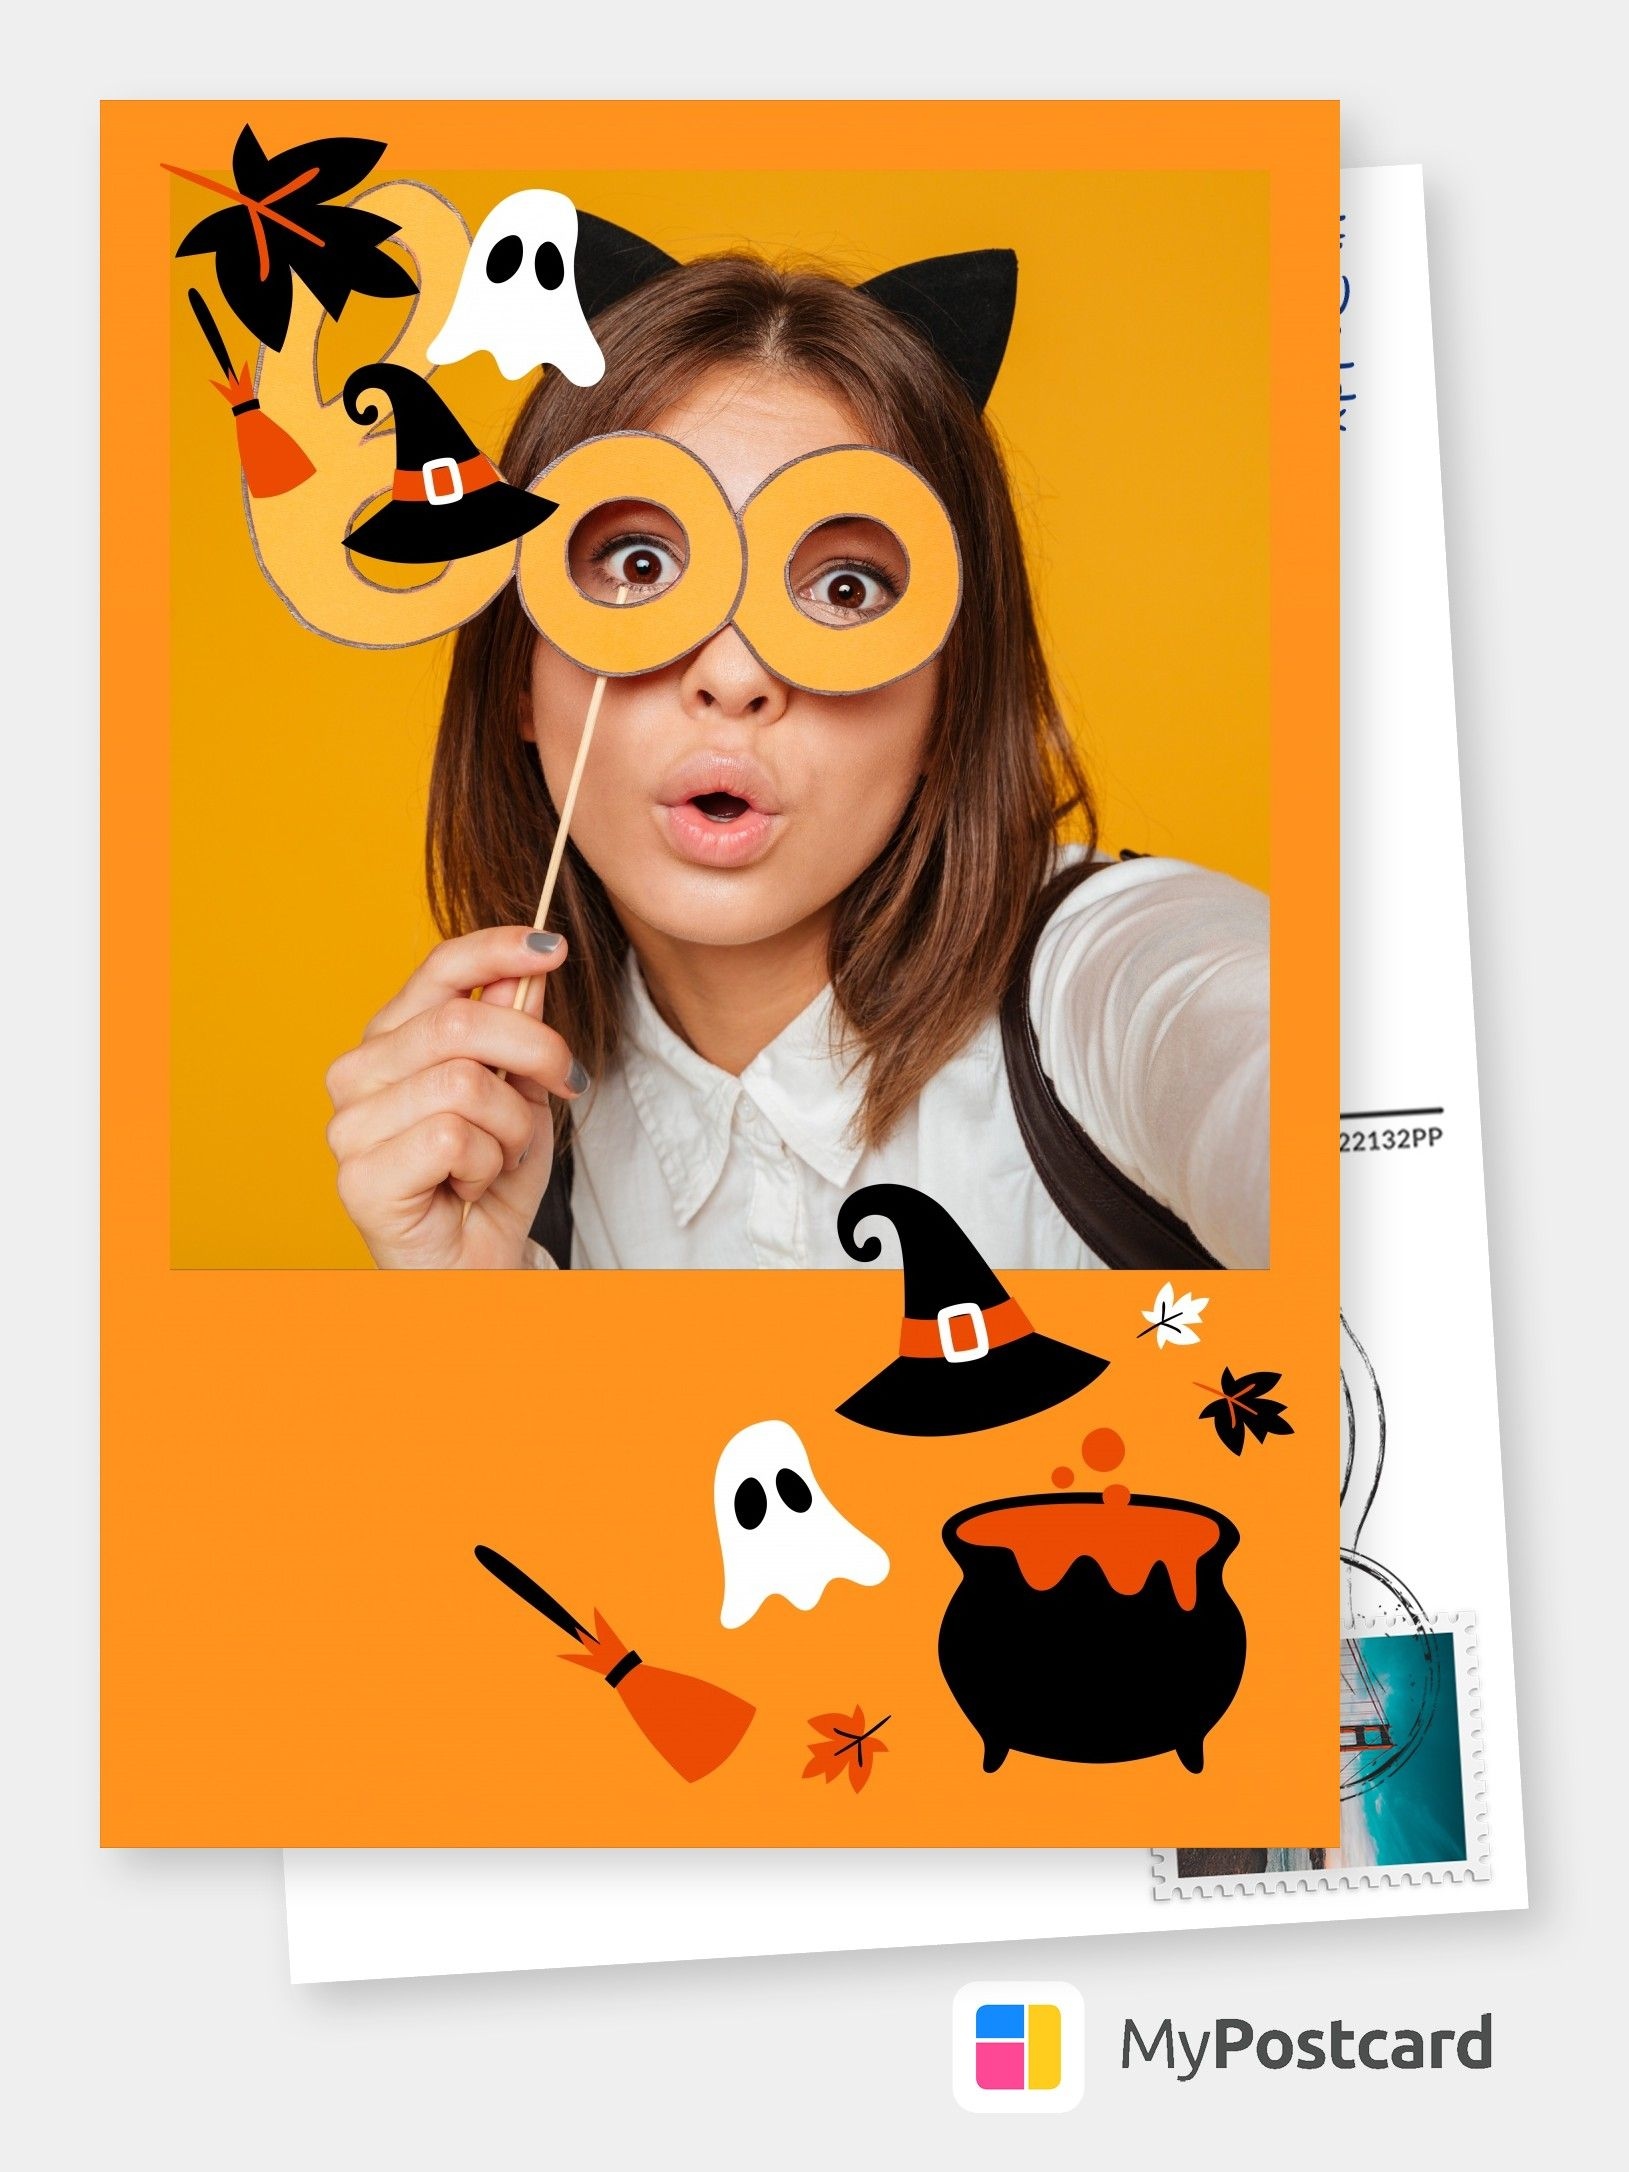 Mypostcard Over 50 000 Postcards And Greeting Cards Templates Designs And Ideas For Any Occasion Online Halloween Cards Halloween Wallpaper Cute Halloween Greetings